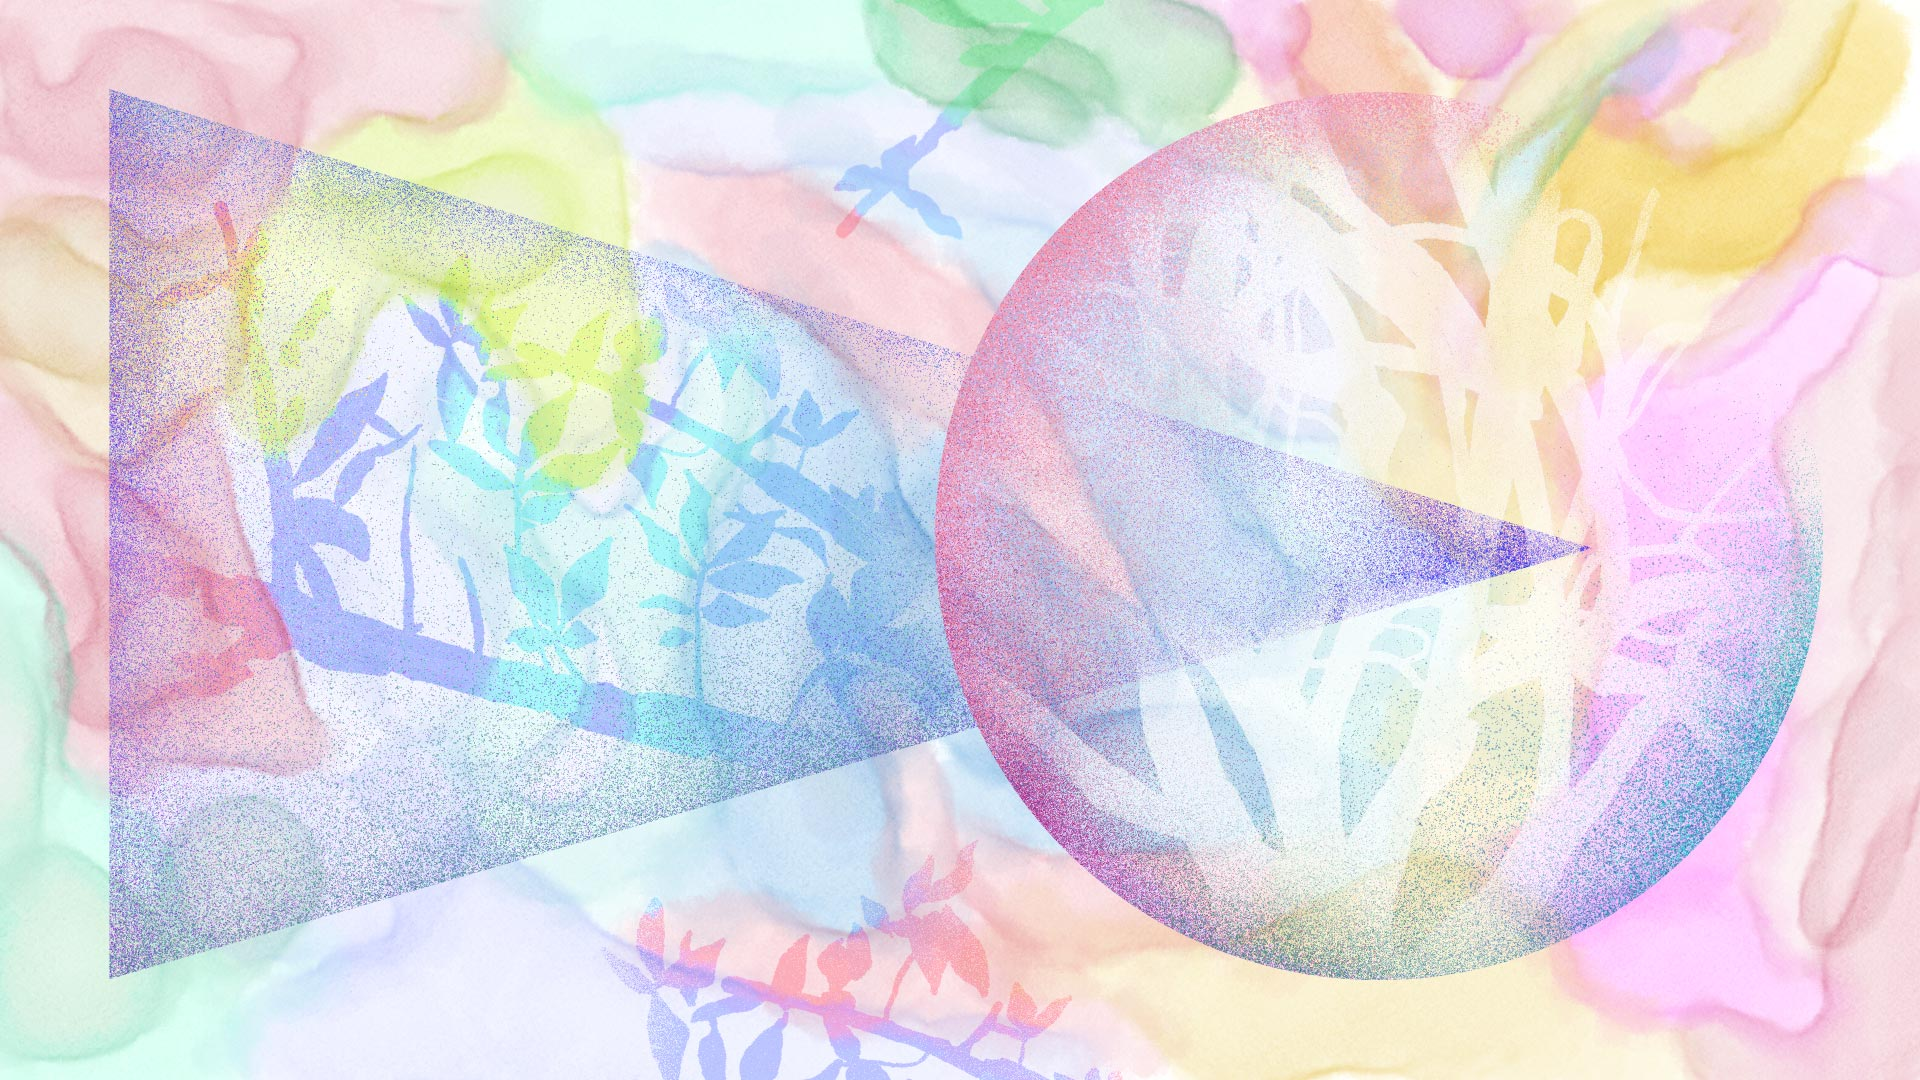 "A faux watercolor digital painting in pastel color tones. On top of that, a large airbrushed triangle and circle intersect each other. Each shape holds the silhouette of foliage and branches. Below the shapes, the handwritten text: ""I smiled for a photo and fell upward out of my body""."